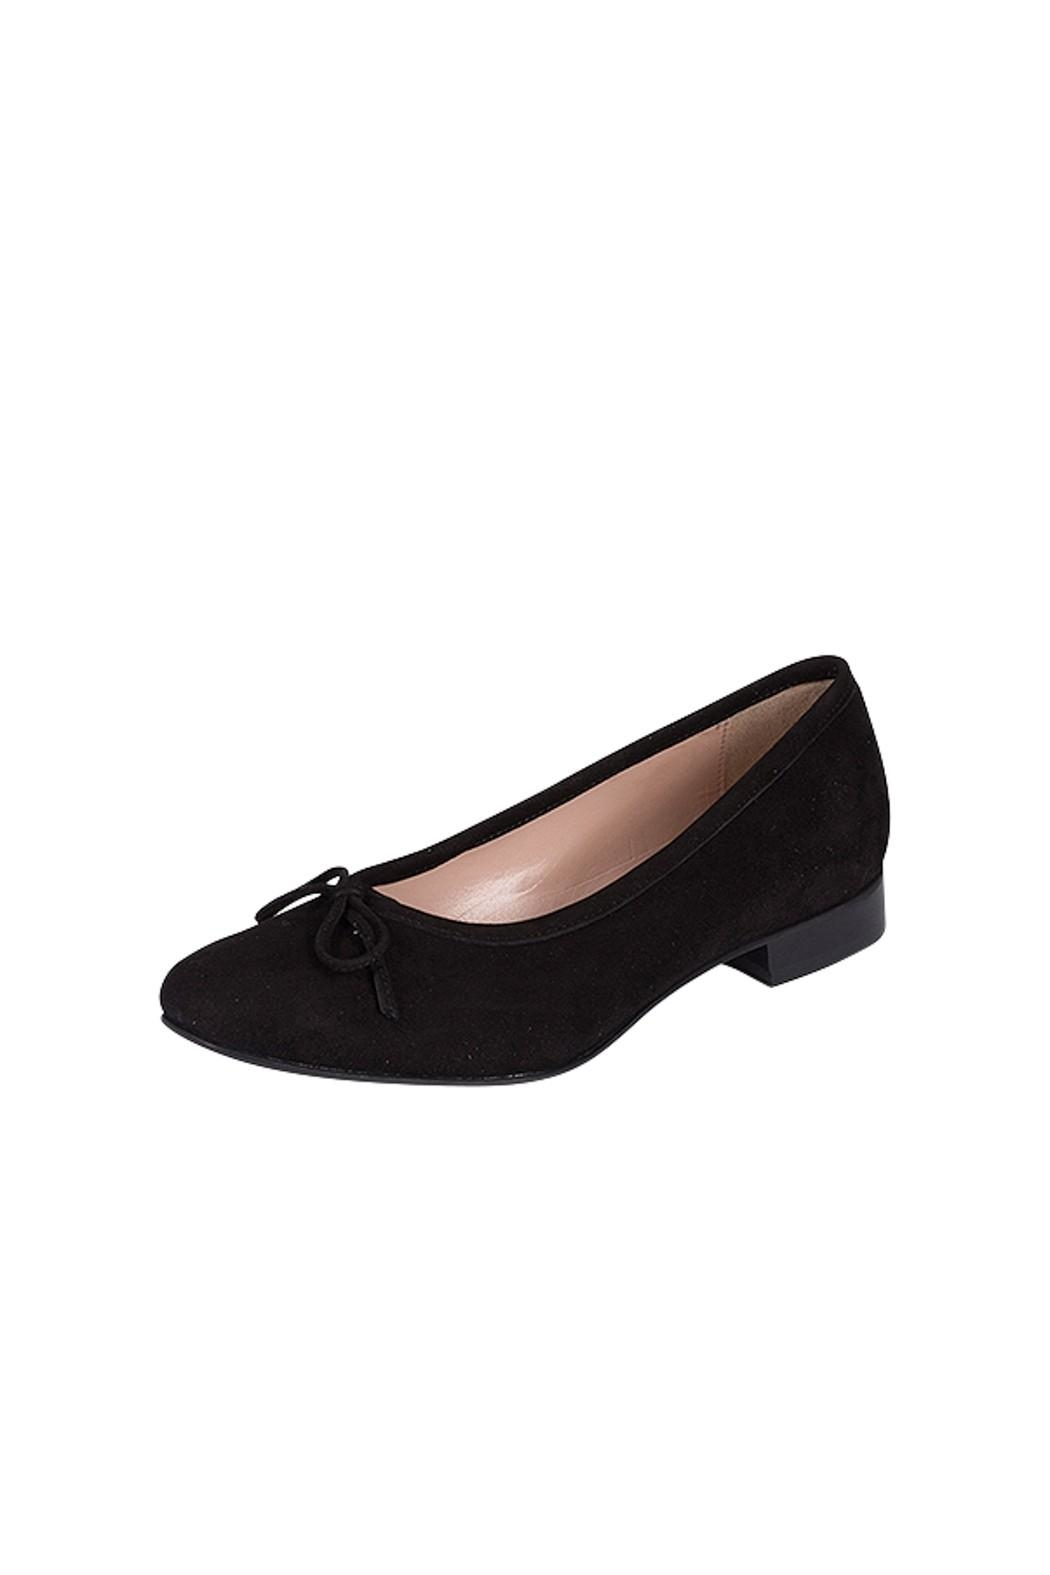 Pascucci Black Leather-Suede Ballerinas - Front Full Image